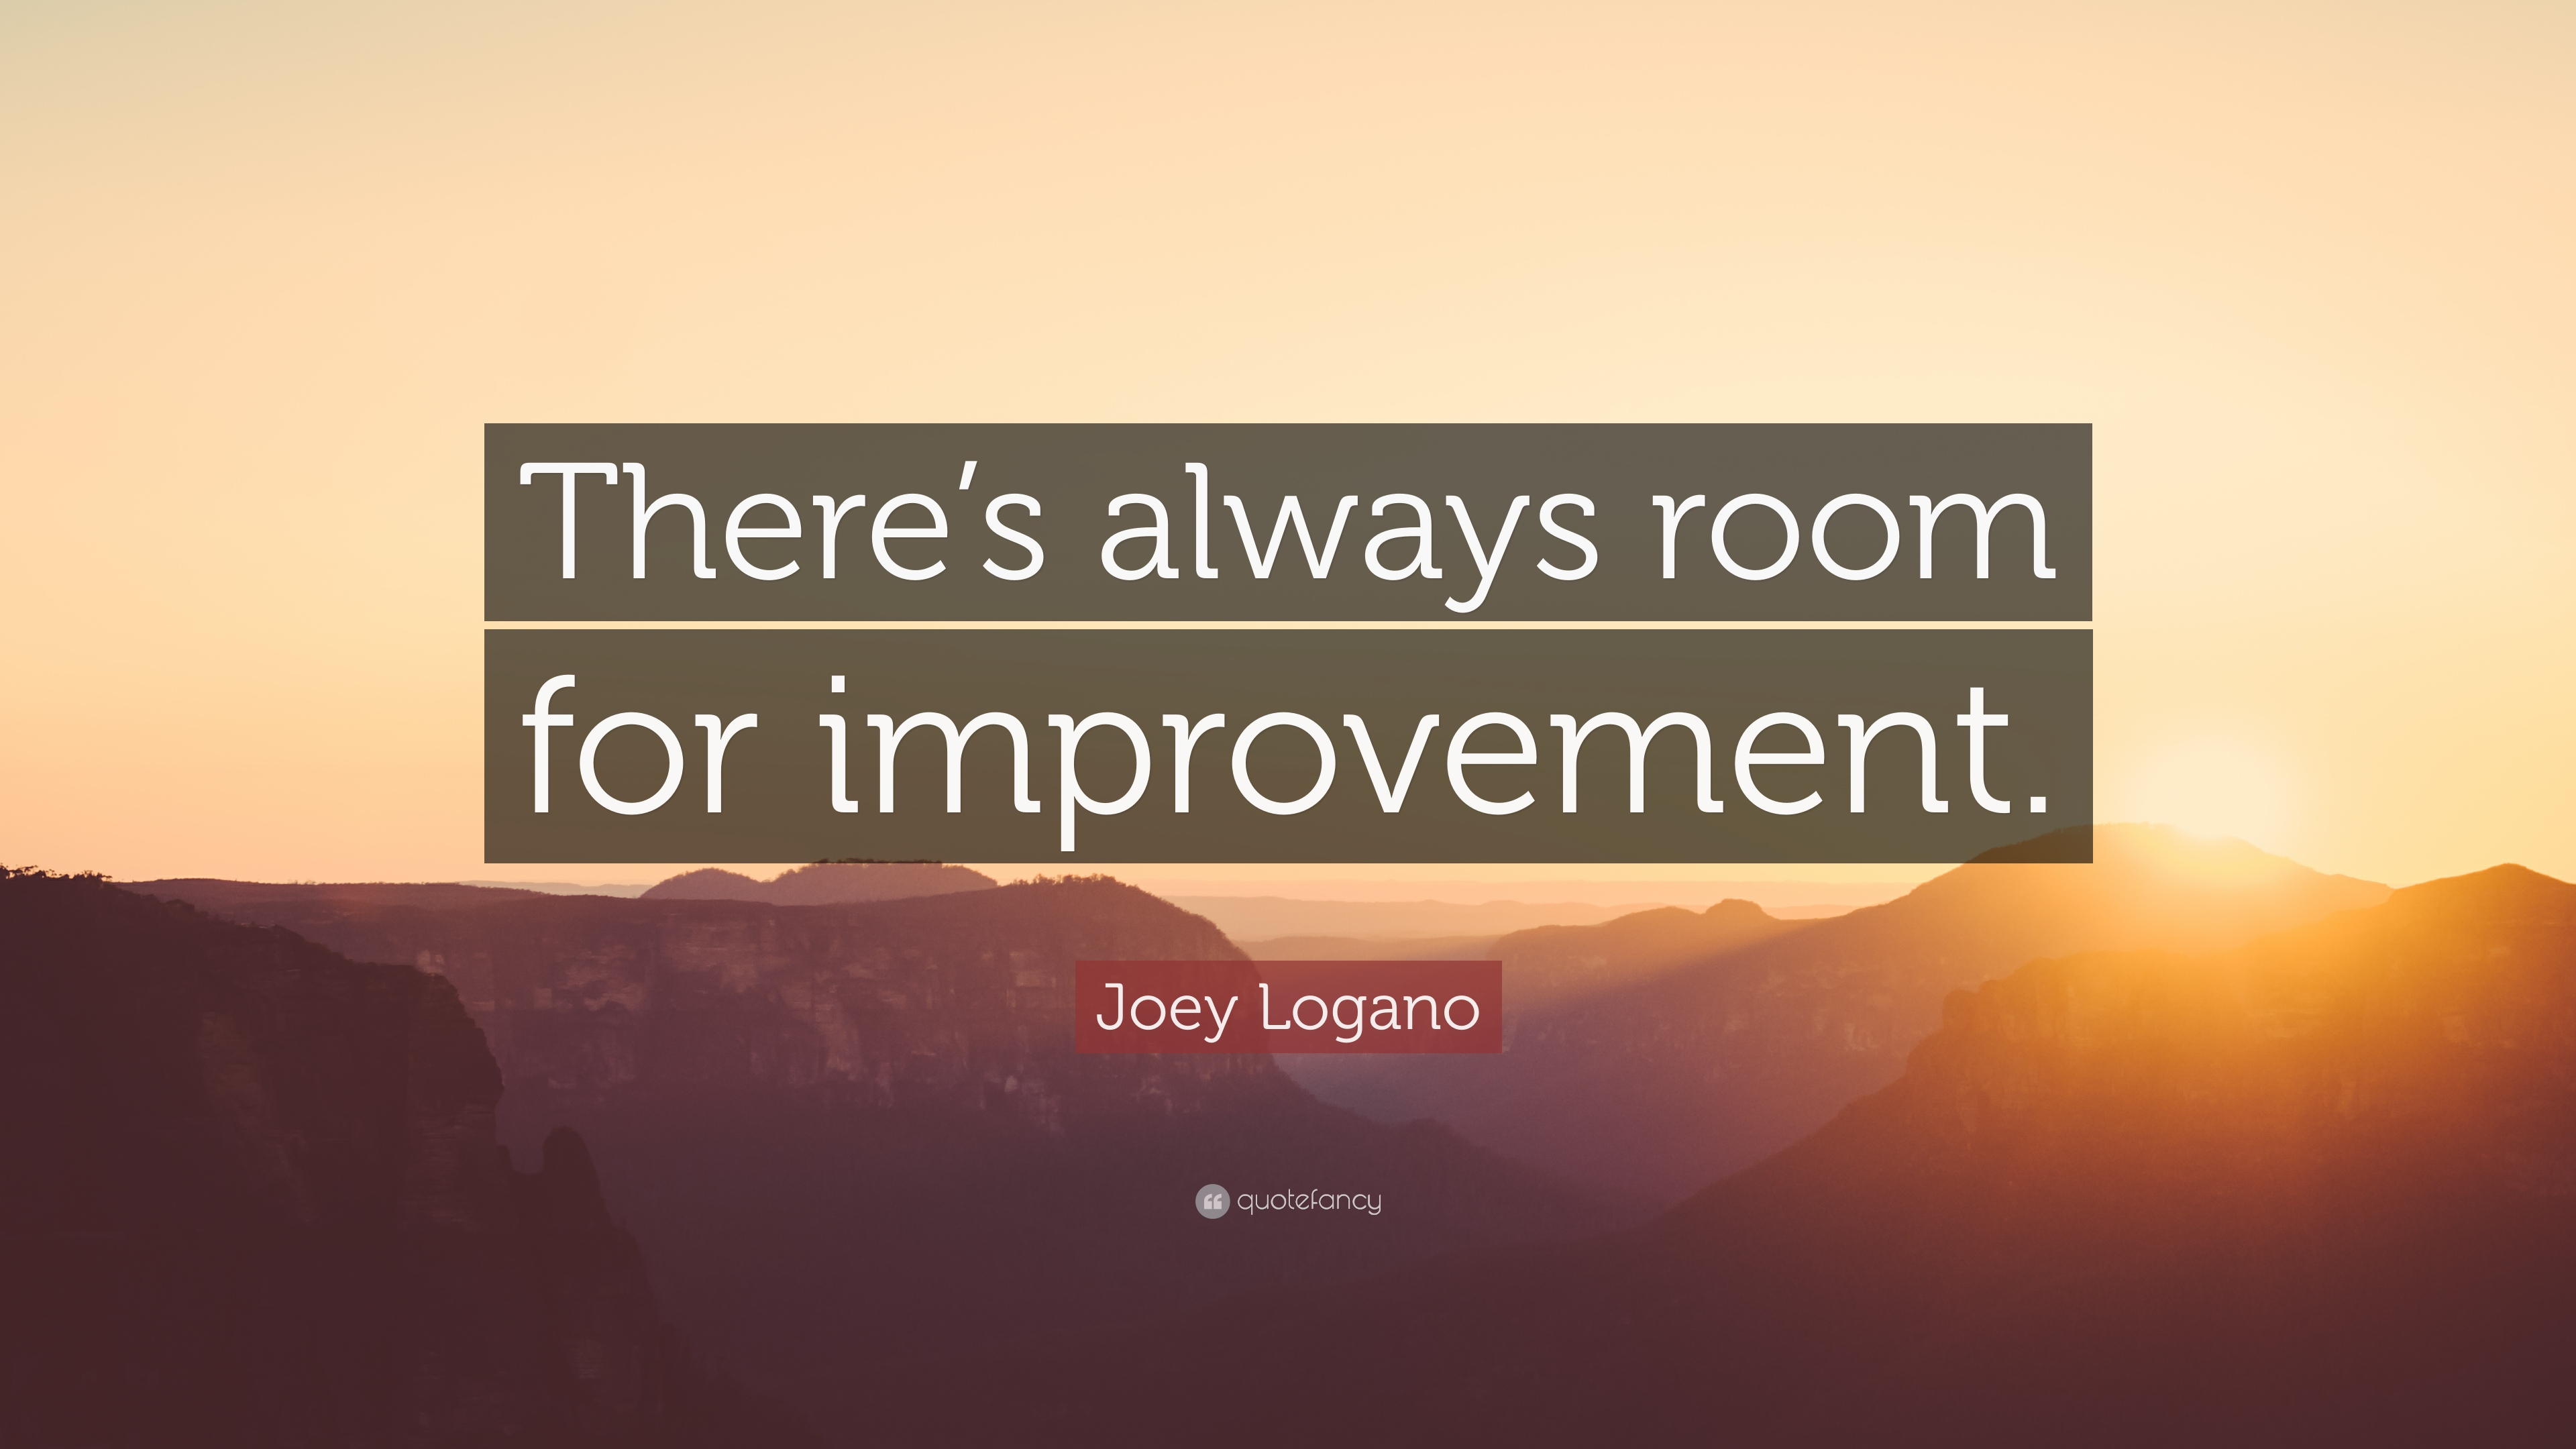 Quotes About Self Improvement Self Improvement Quotes 40 Wallpapers  Quotefancy